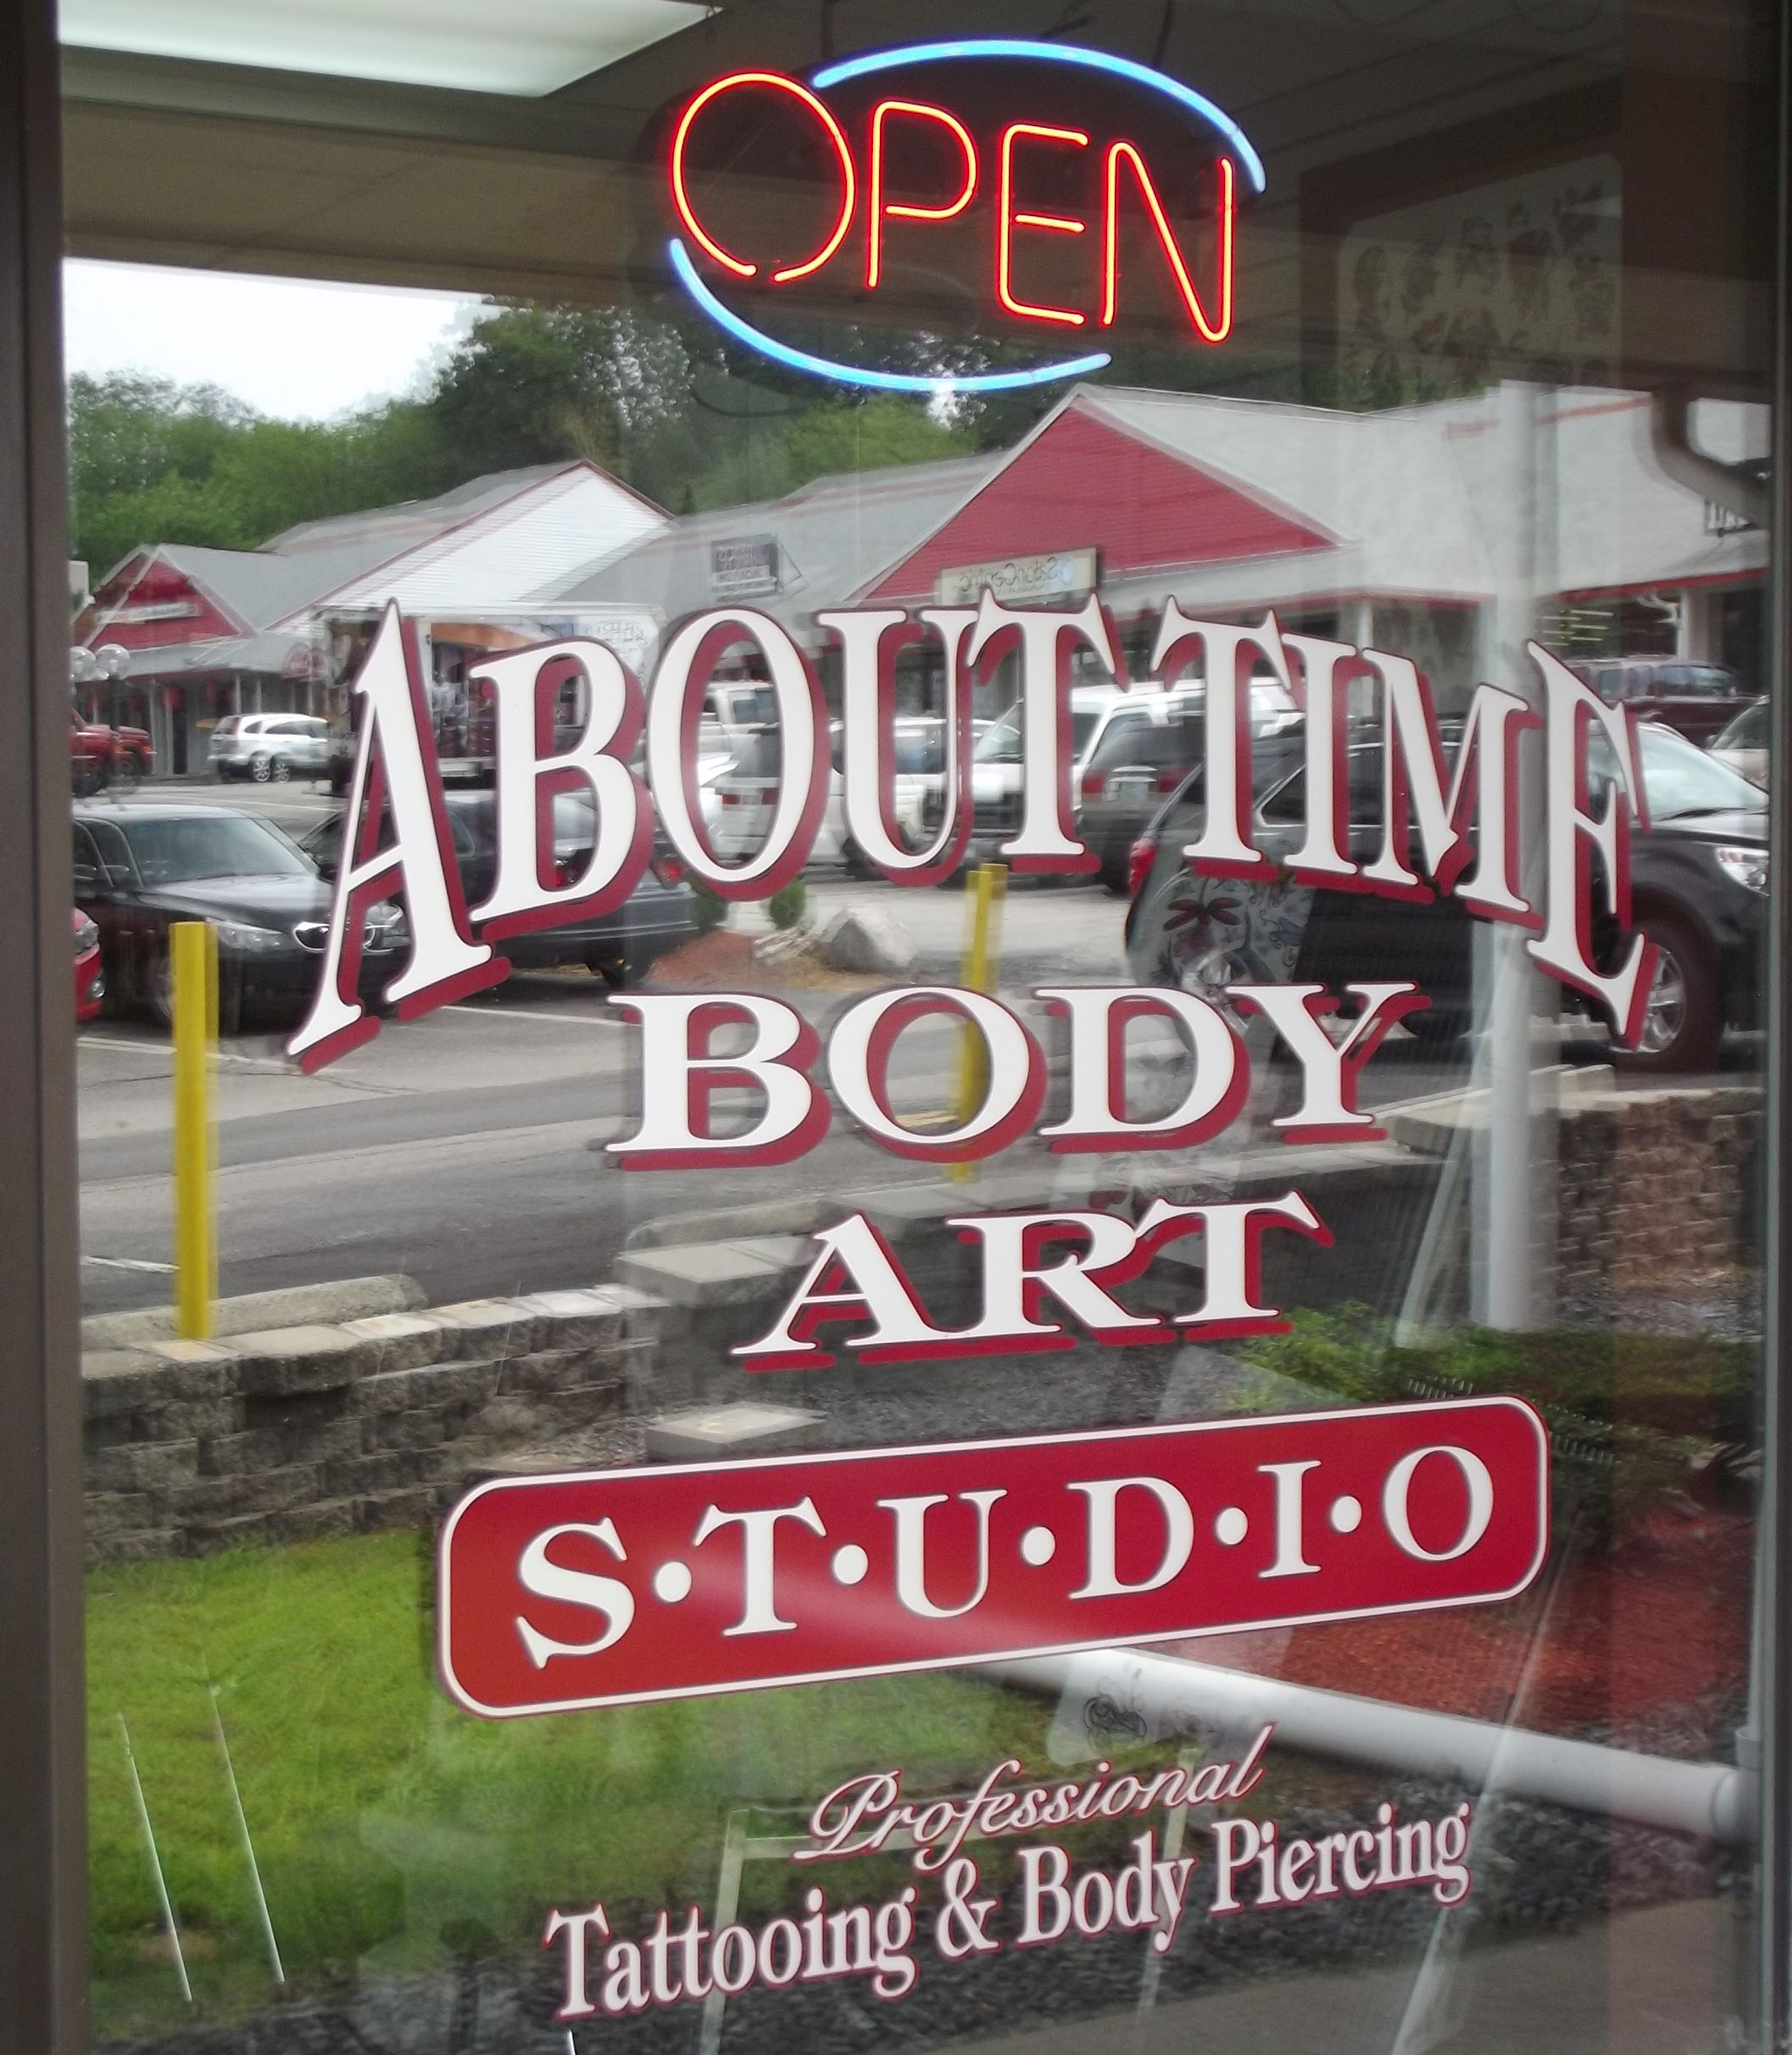 About time tattoo and body piercing nashua new hampshire for Tattoo shops in nashua nh